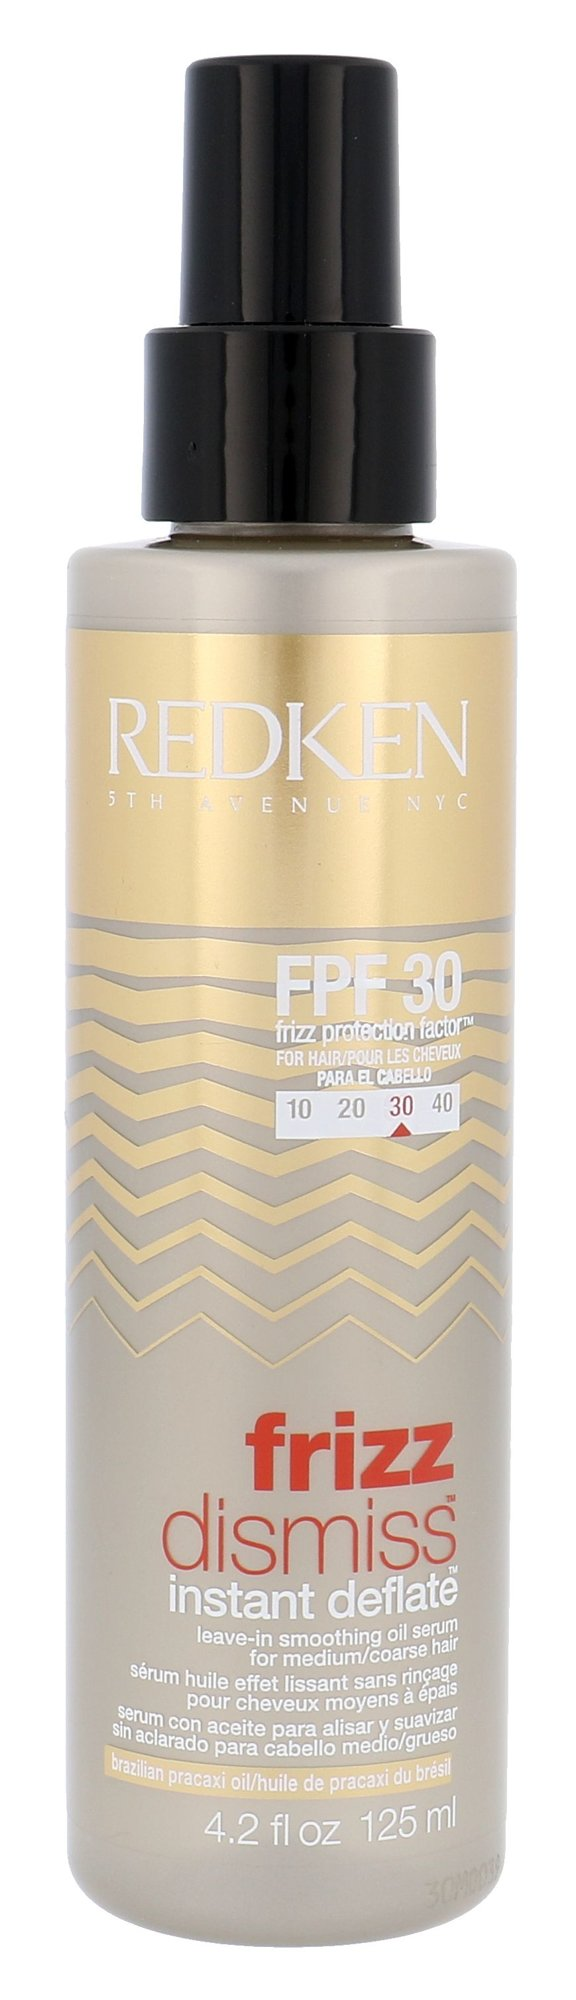 Redken Frizz Dismiss Cosmetic 125ml  Instant Deflate